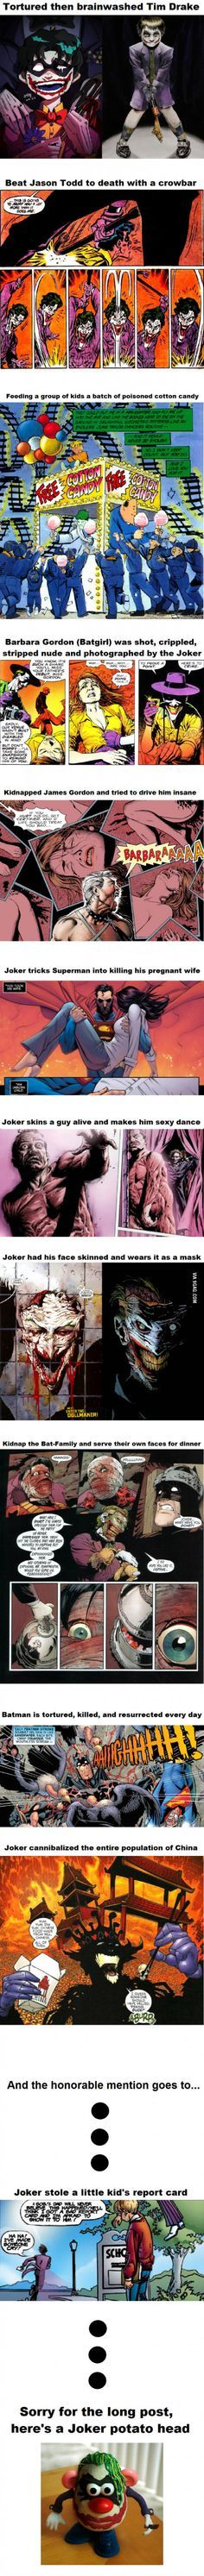 Why the Joker is one of the most f**ked up villains of all time.